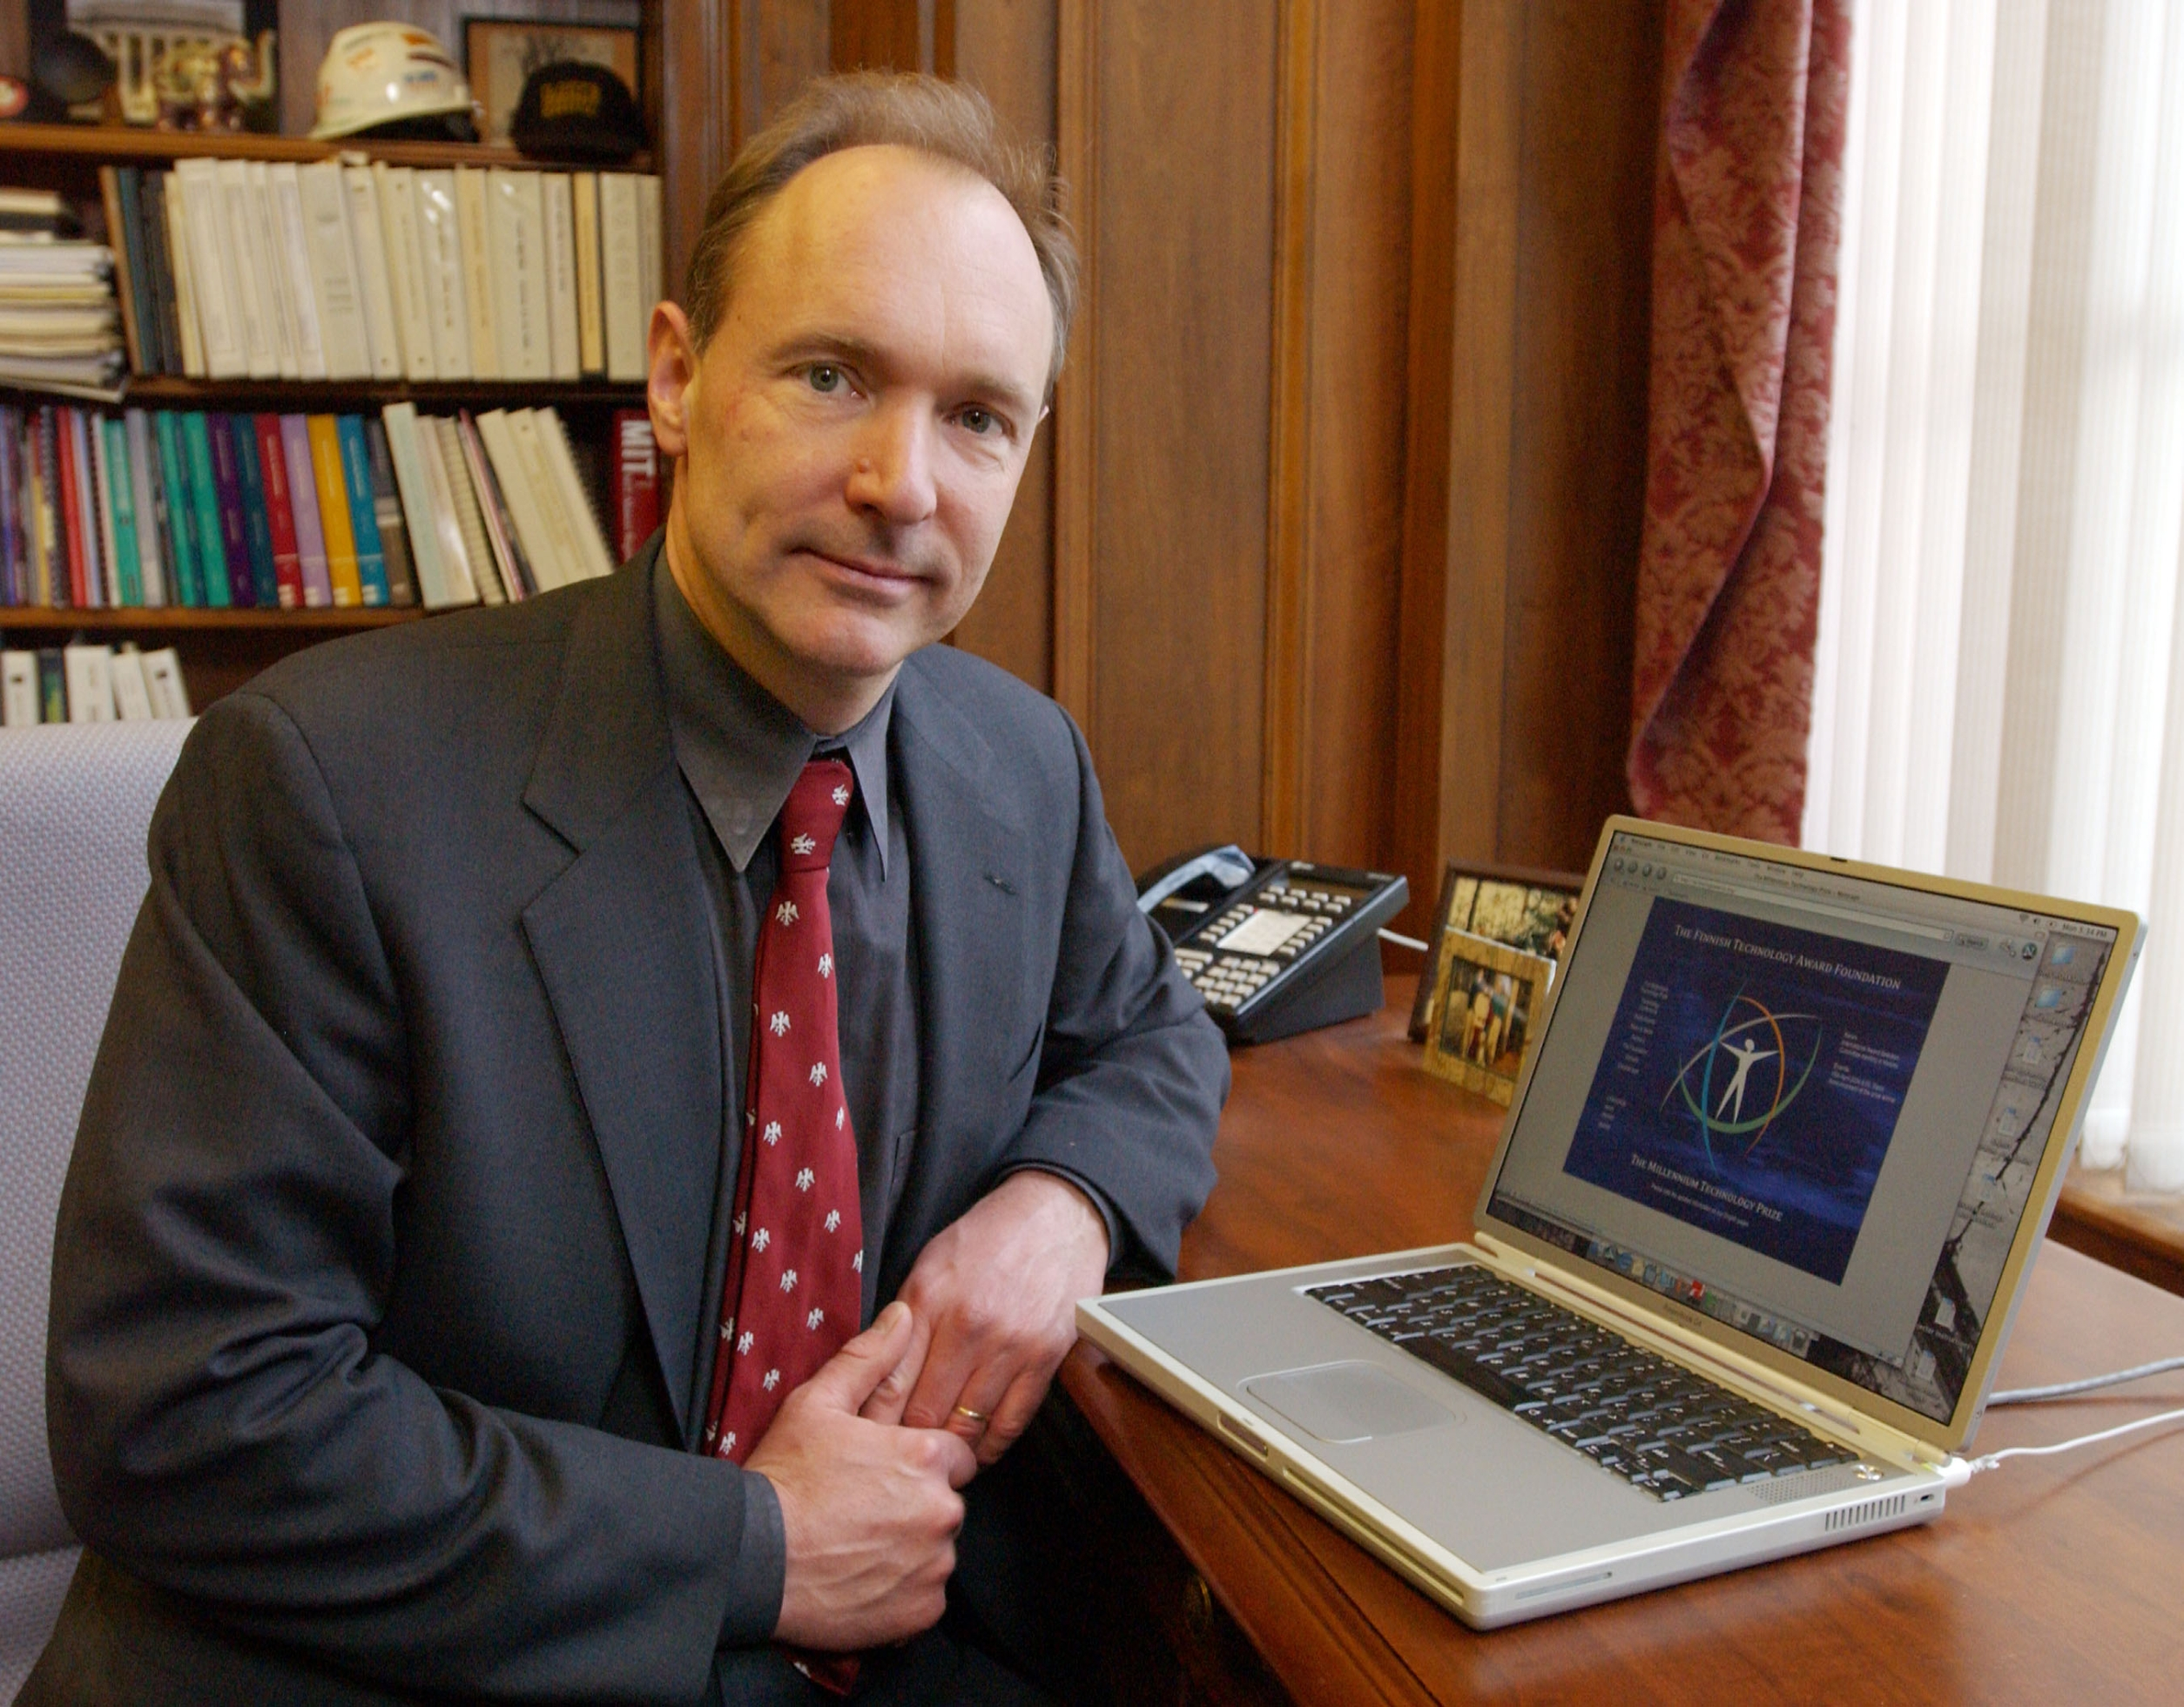 Father of web Tim Berners-Lee says Internet today is a basic human right